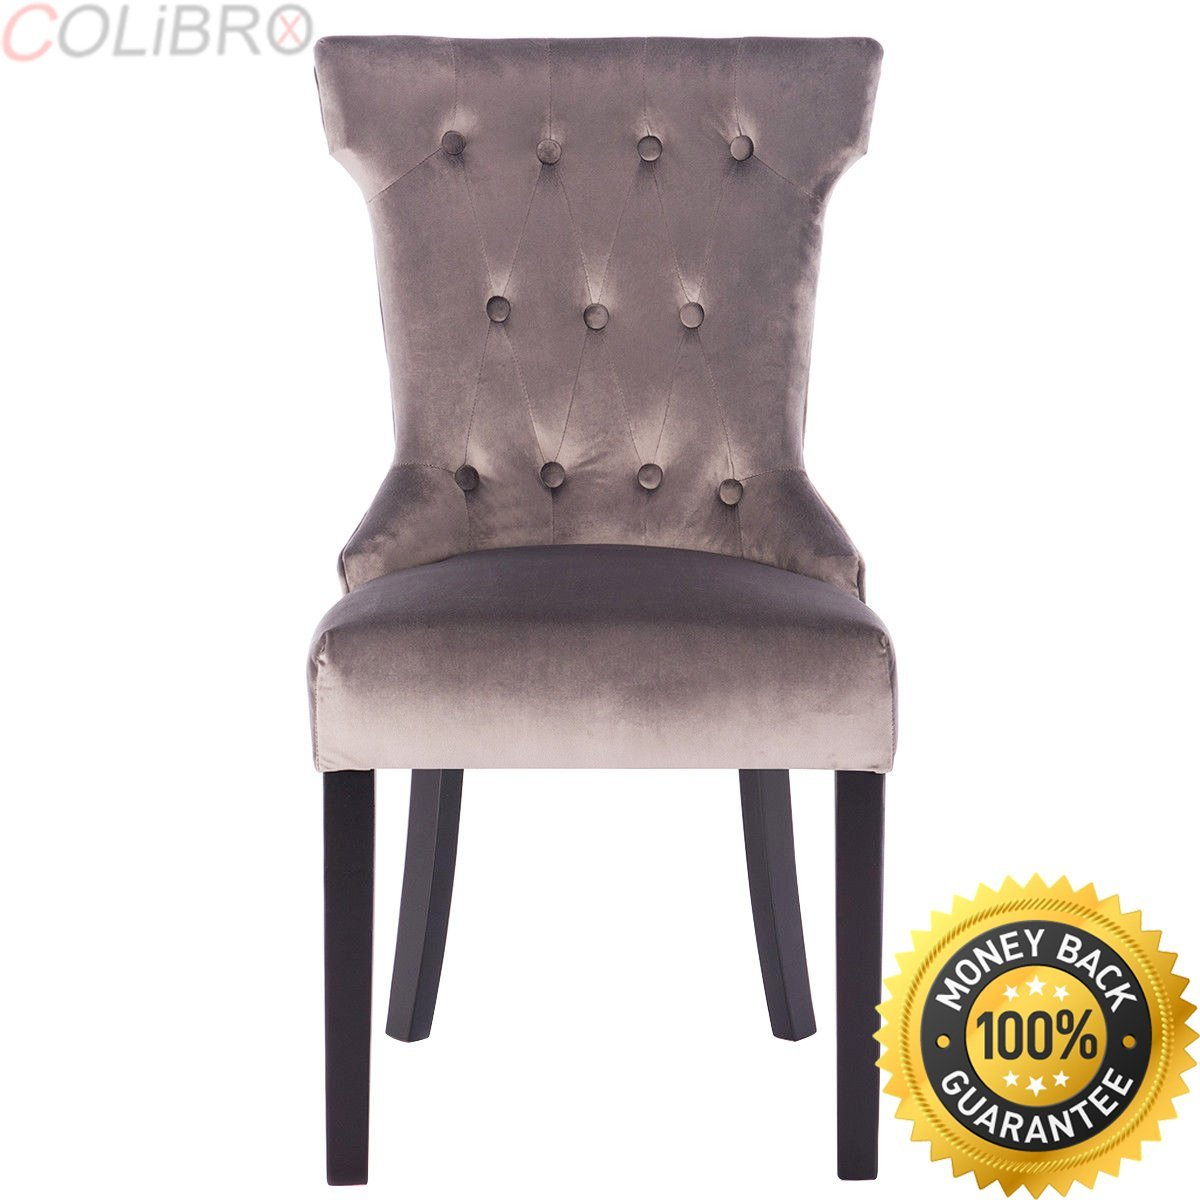 Cheap Tufted Leather Dining Chair Find Tufted Leather